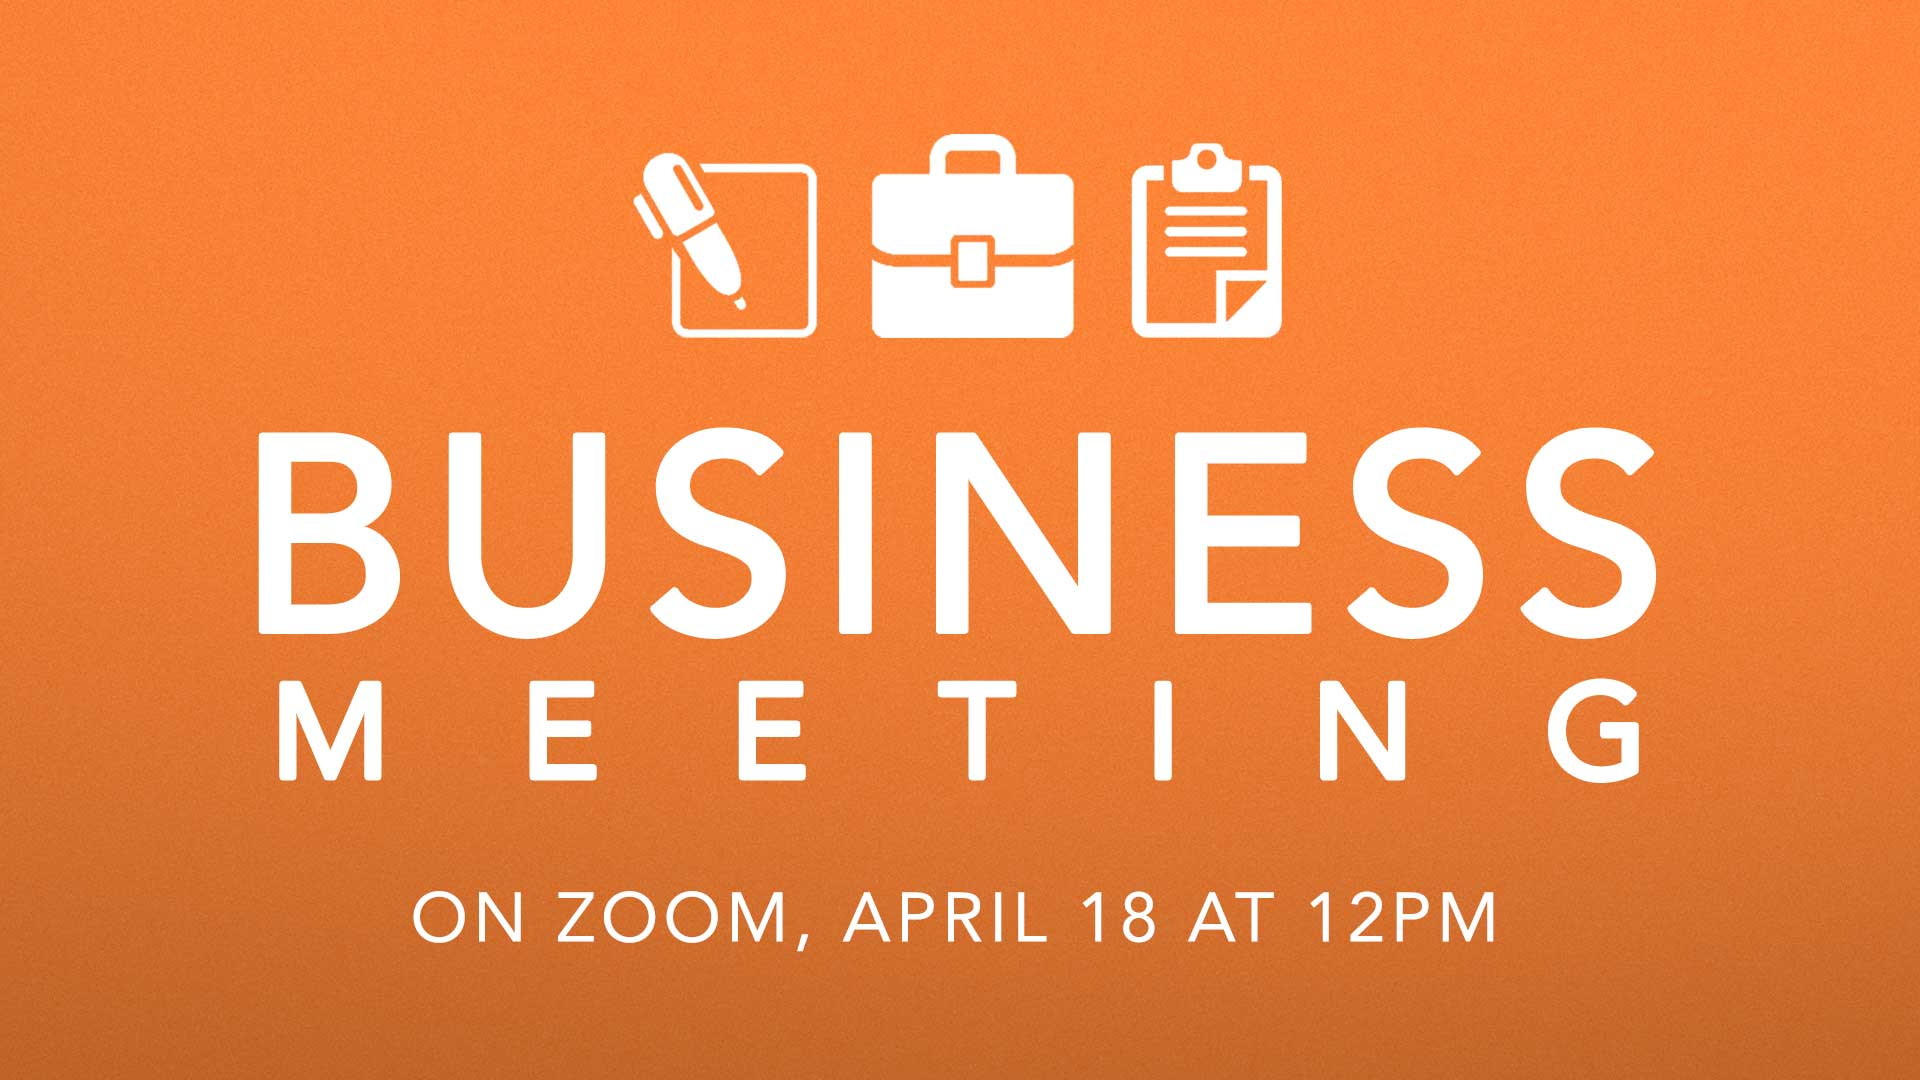 1920x1080-FB-EVENT Business Meeting Apr18 image